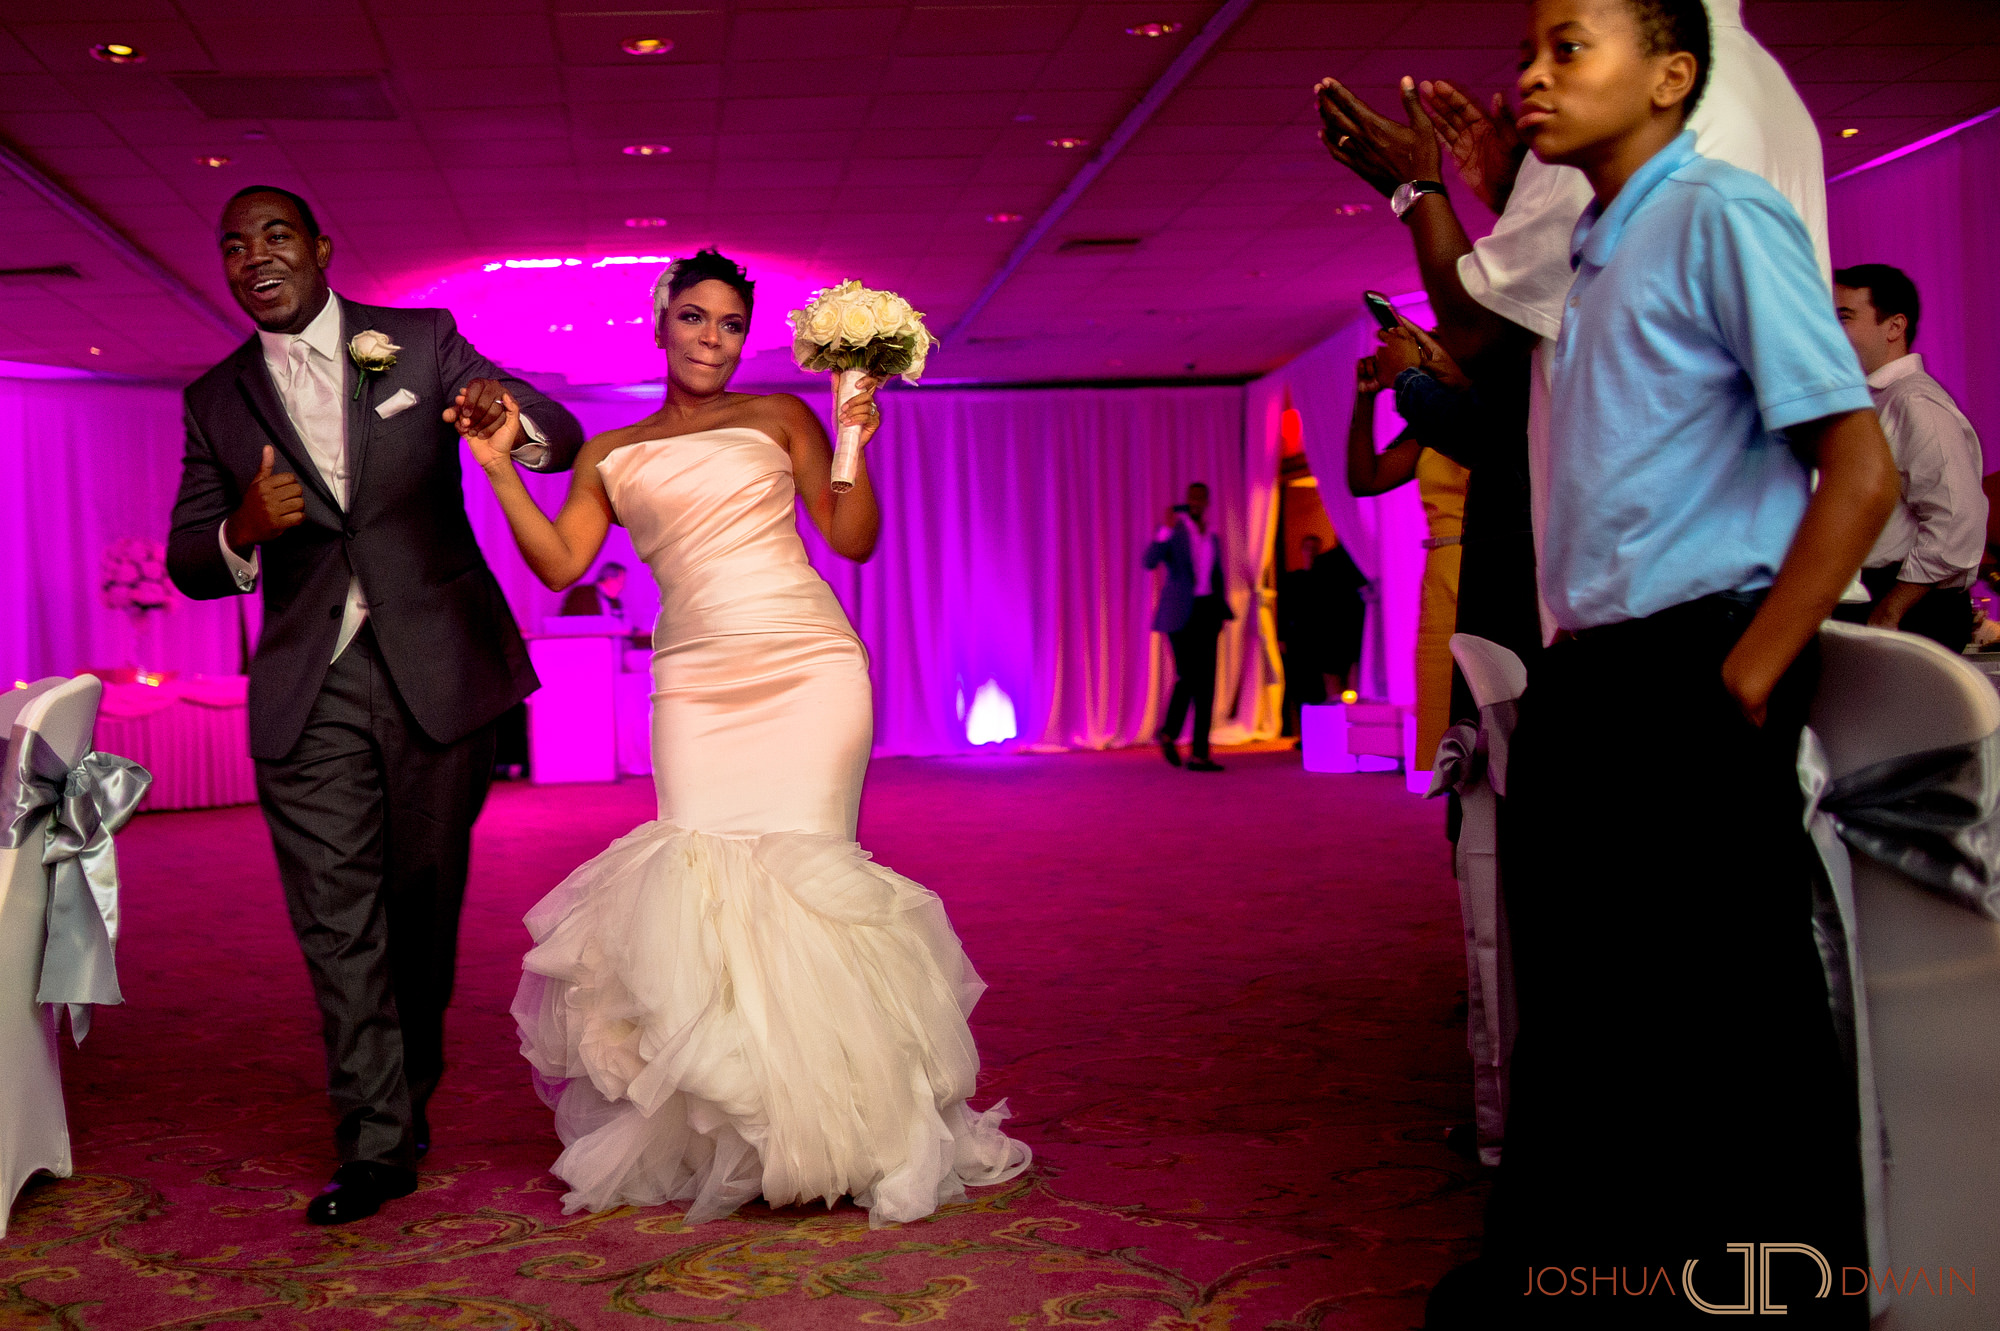 Adrienne & Chad's Wedding at Crest Hollow Country Club in Long Island, NY